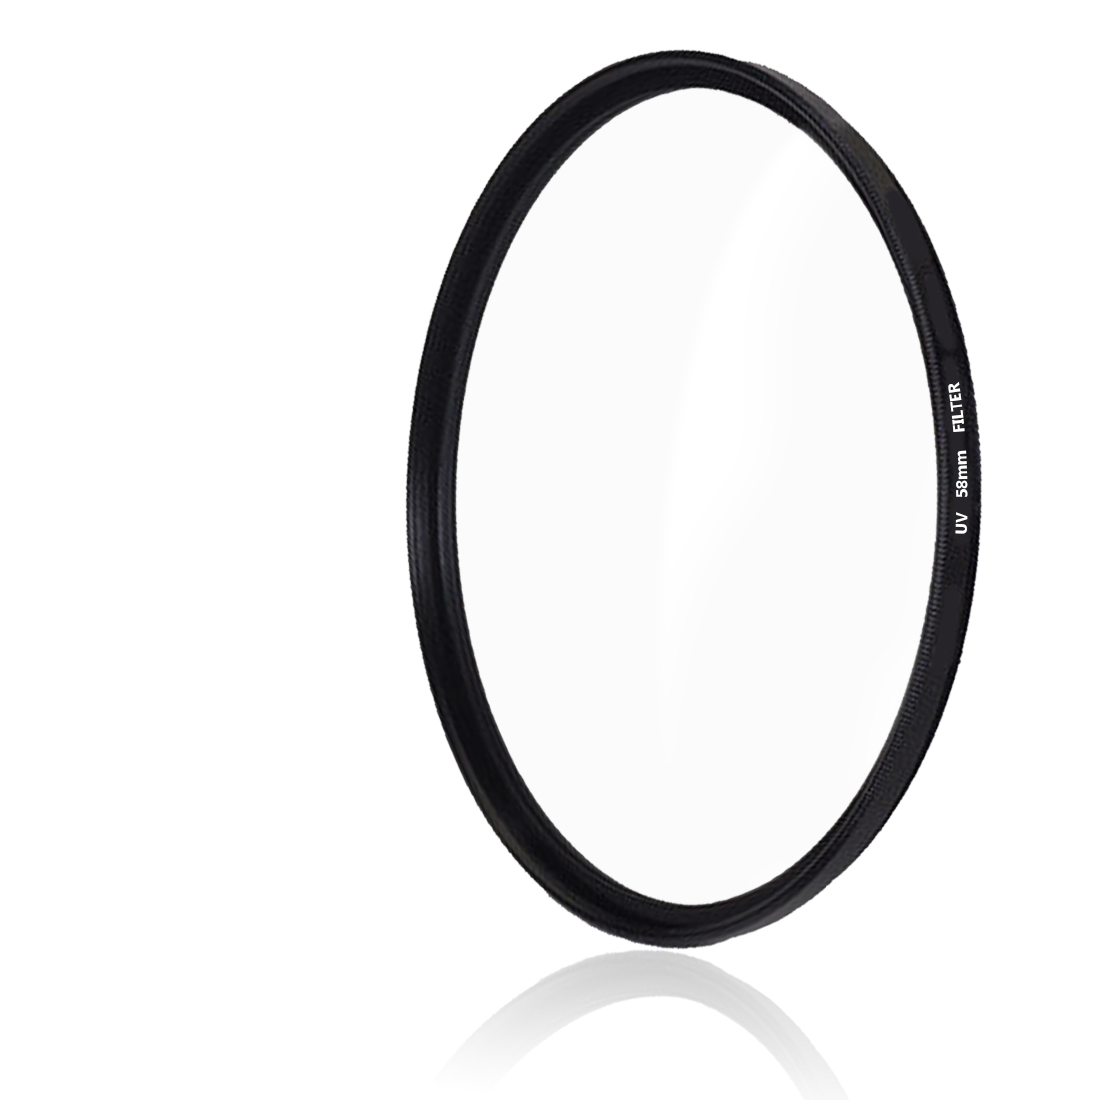 Inpelanyu 30.5/37/40.5/43mm 46mm 49mm 52mm 55mm 58mm 62mm 67mm 72mm 77mm 82mm UV Filter For Canon nikon sony Pentax Camera Lens 3